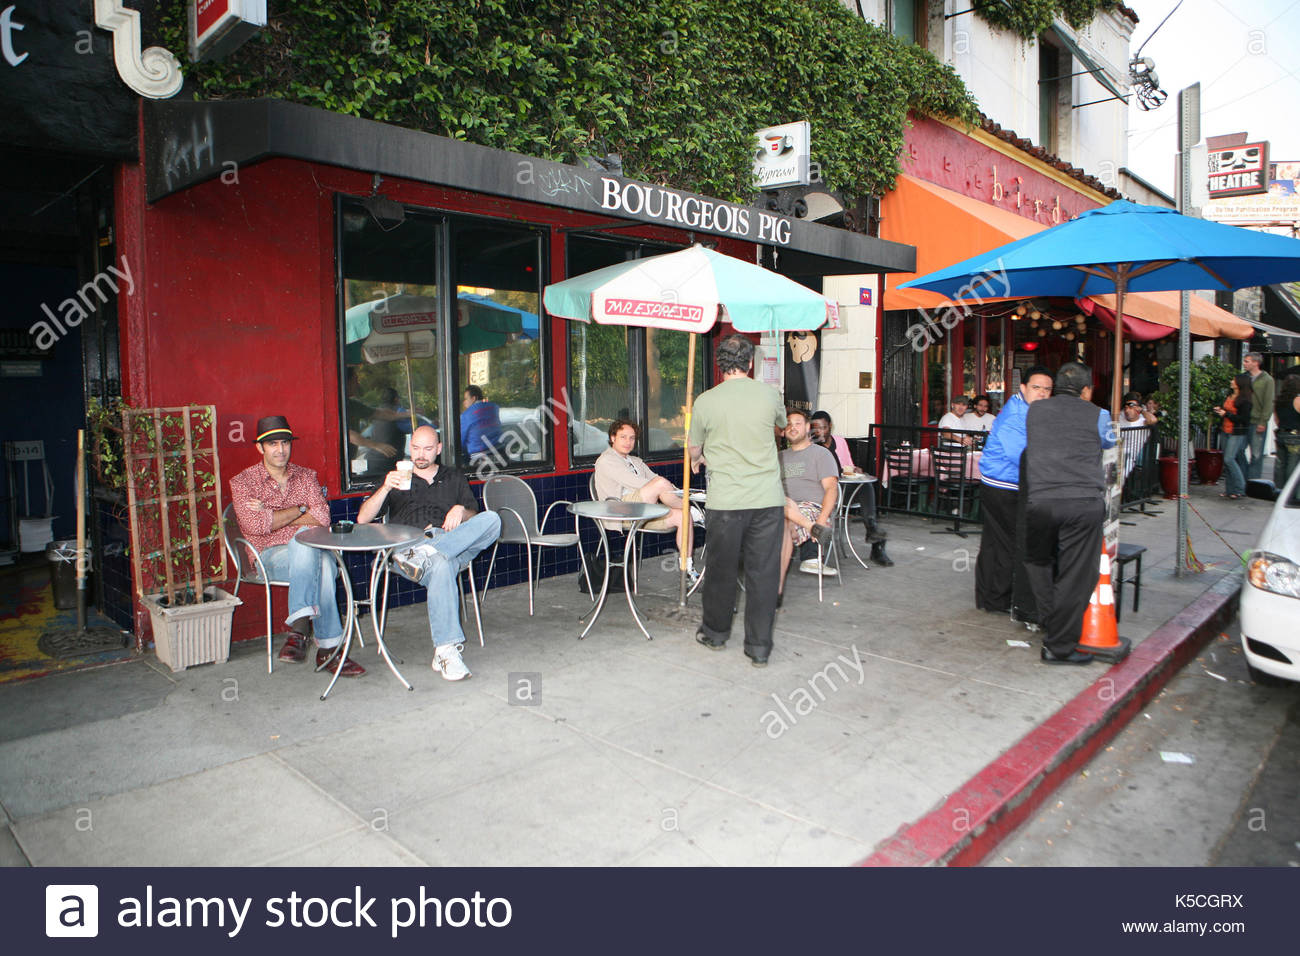 The Bourgeois Pig. Teen Choice winner Daren Kagasoff and Jonas star Chelsea Staub spotted at a low key coffee shop - Stock Image